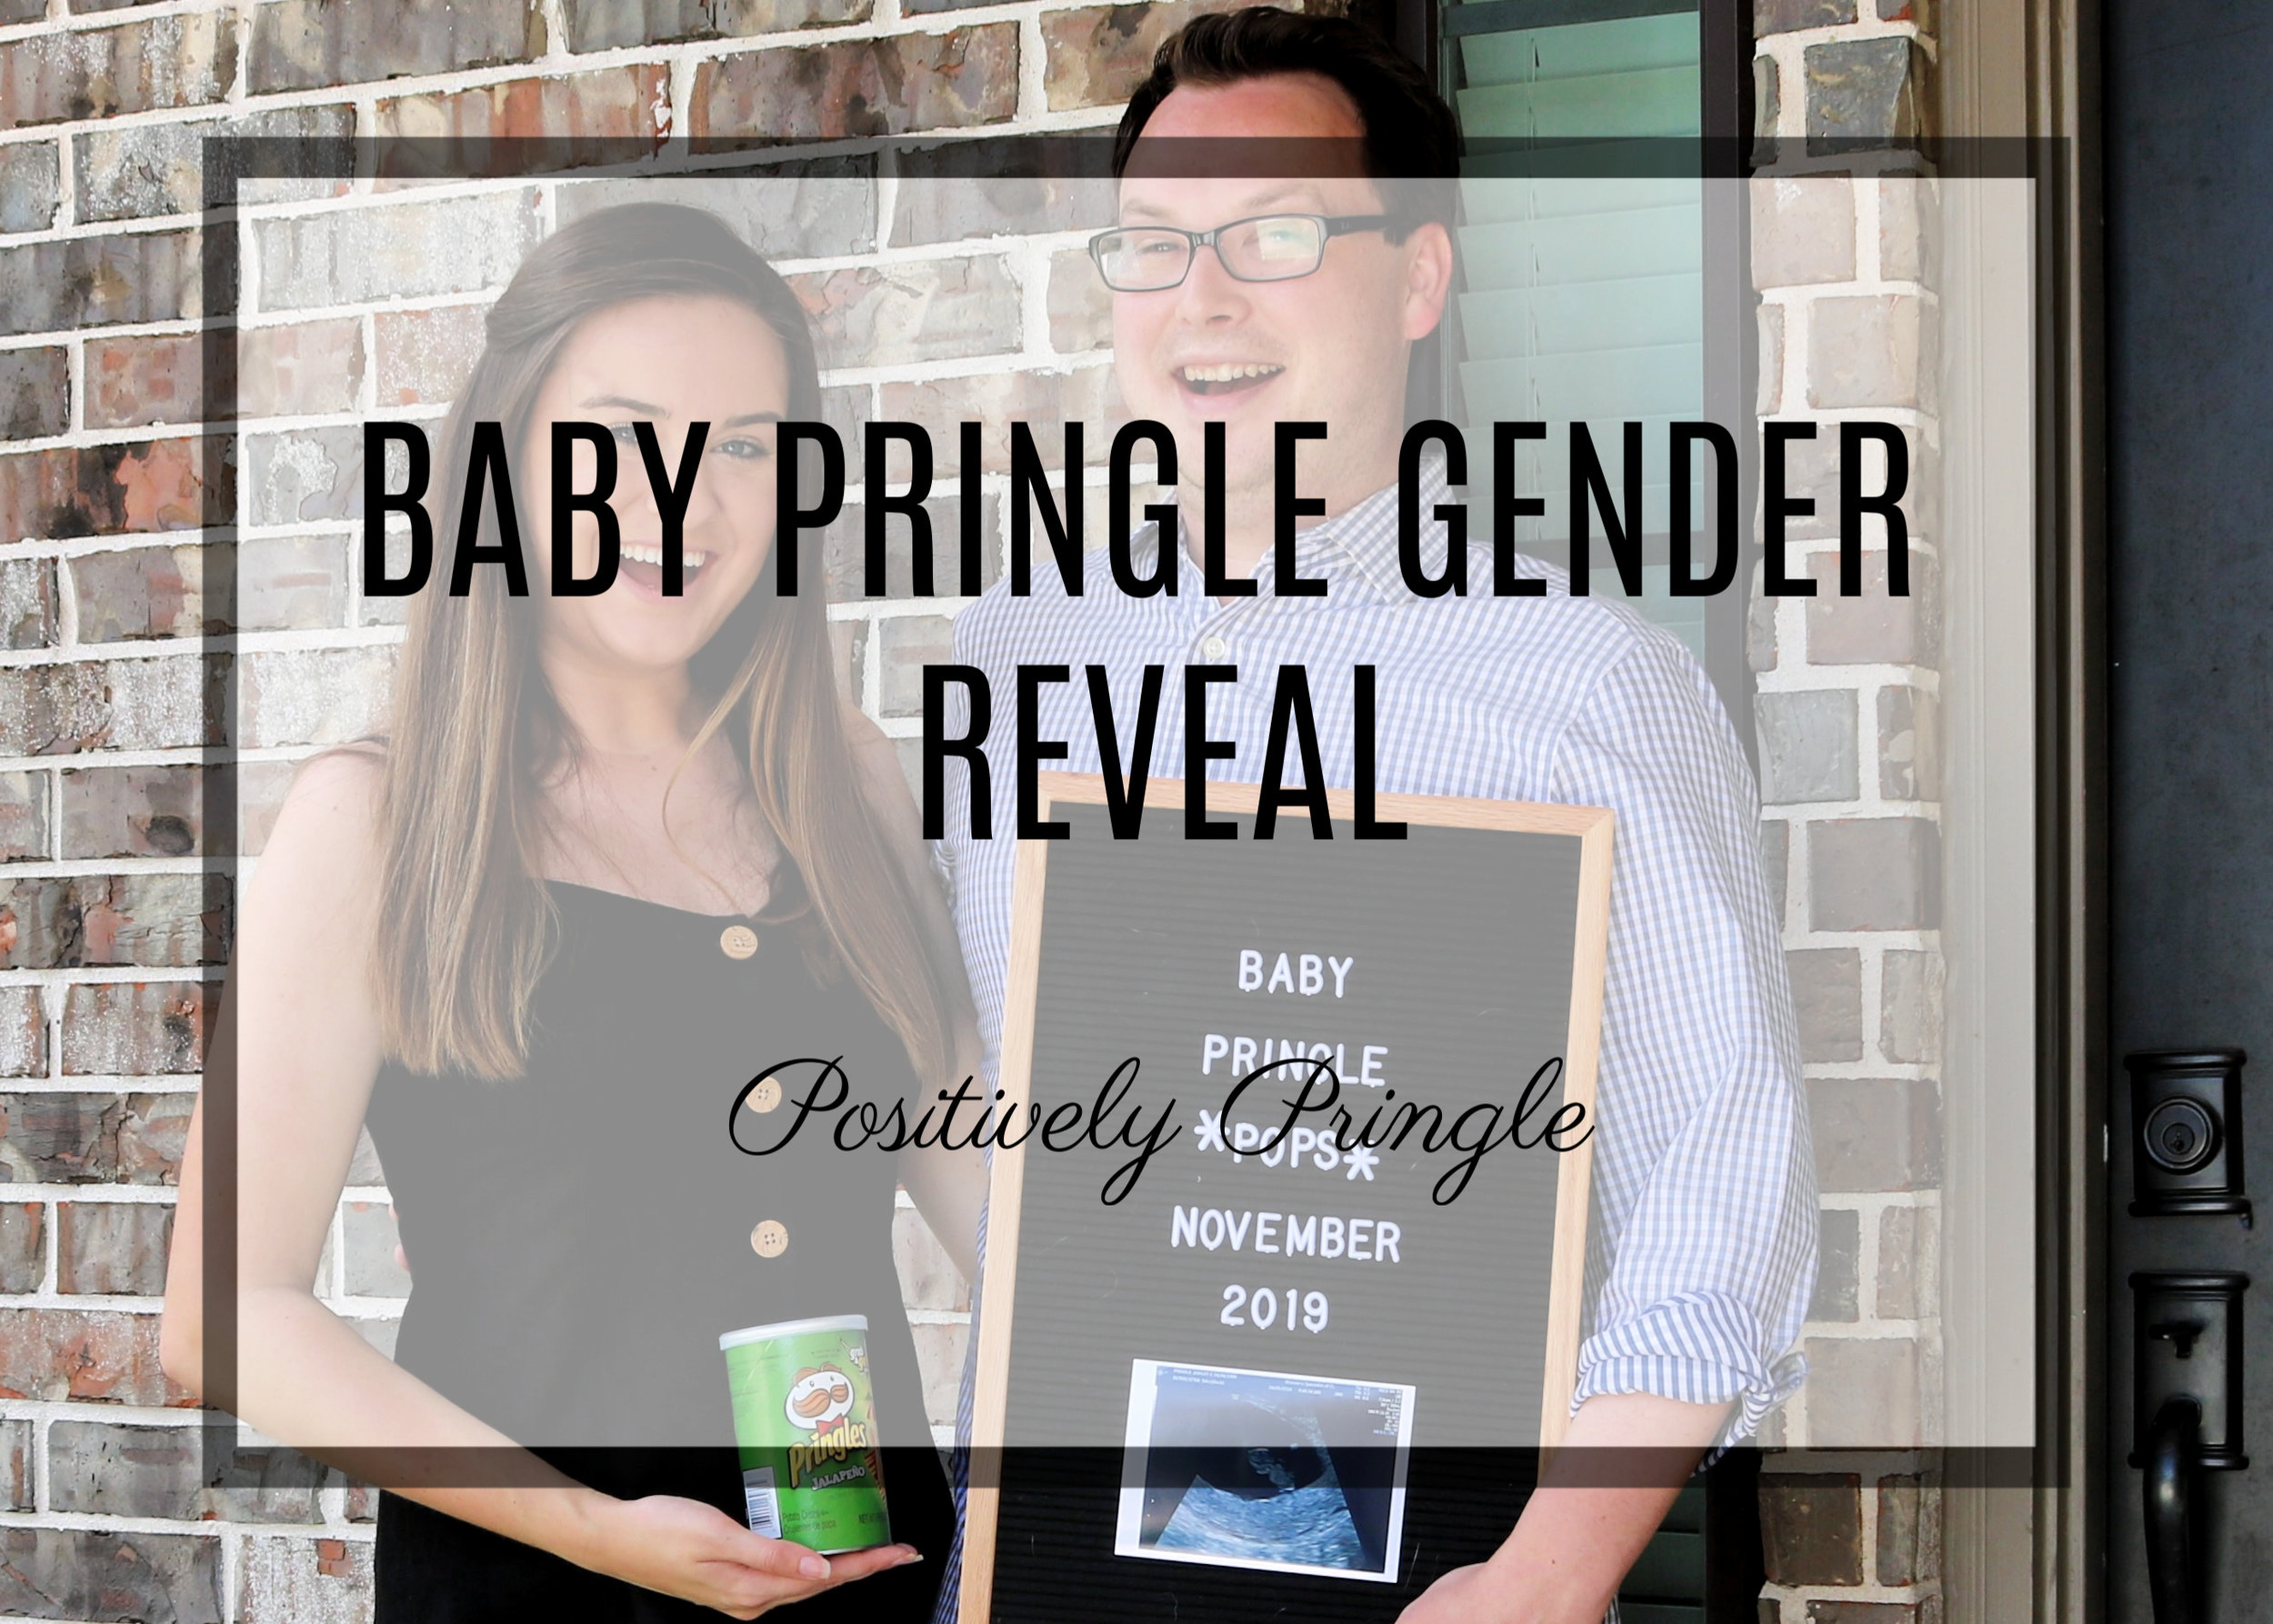 Baby Pringle Gender Reveal